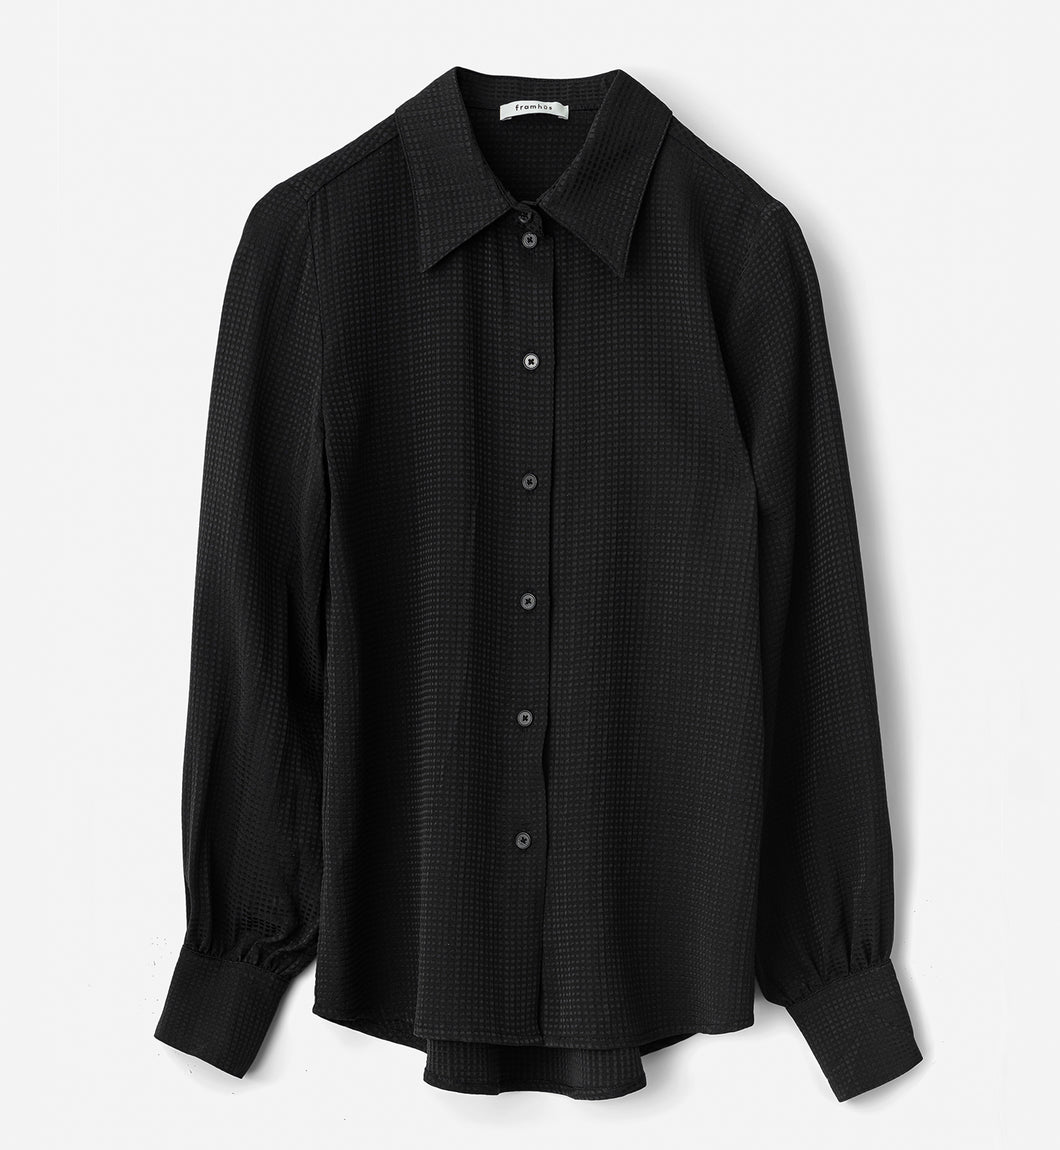 Adele Shirt - Black